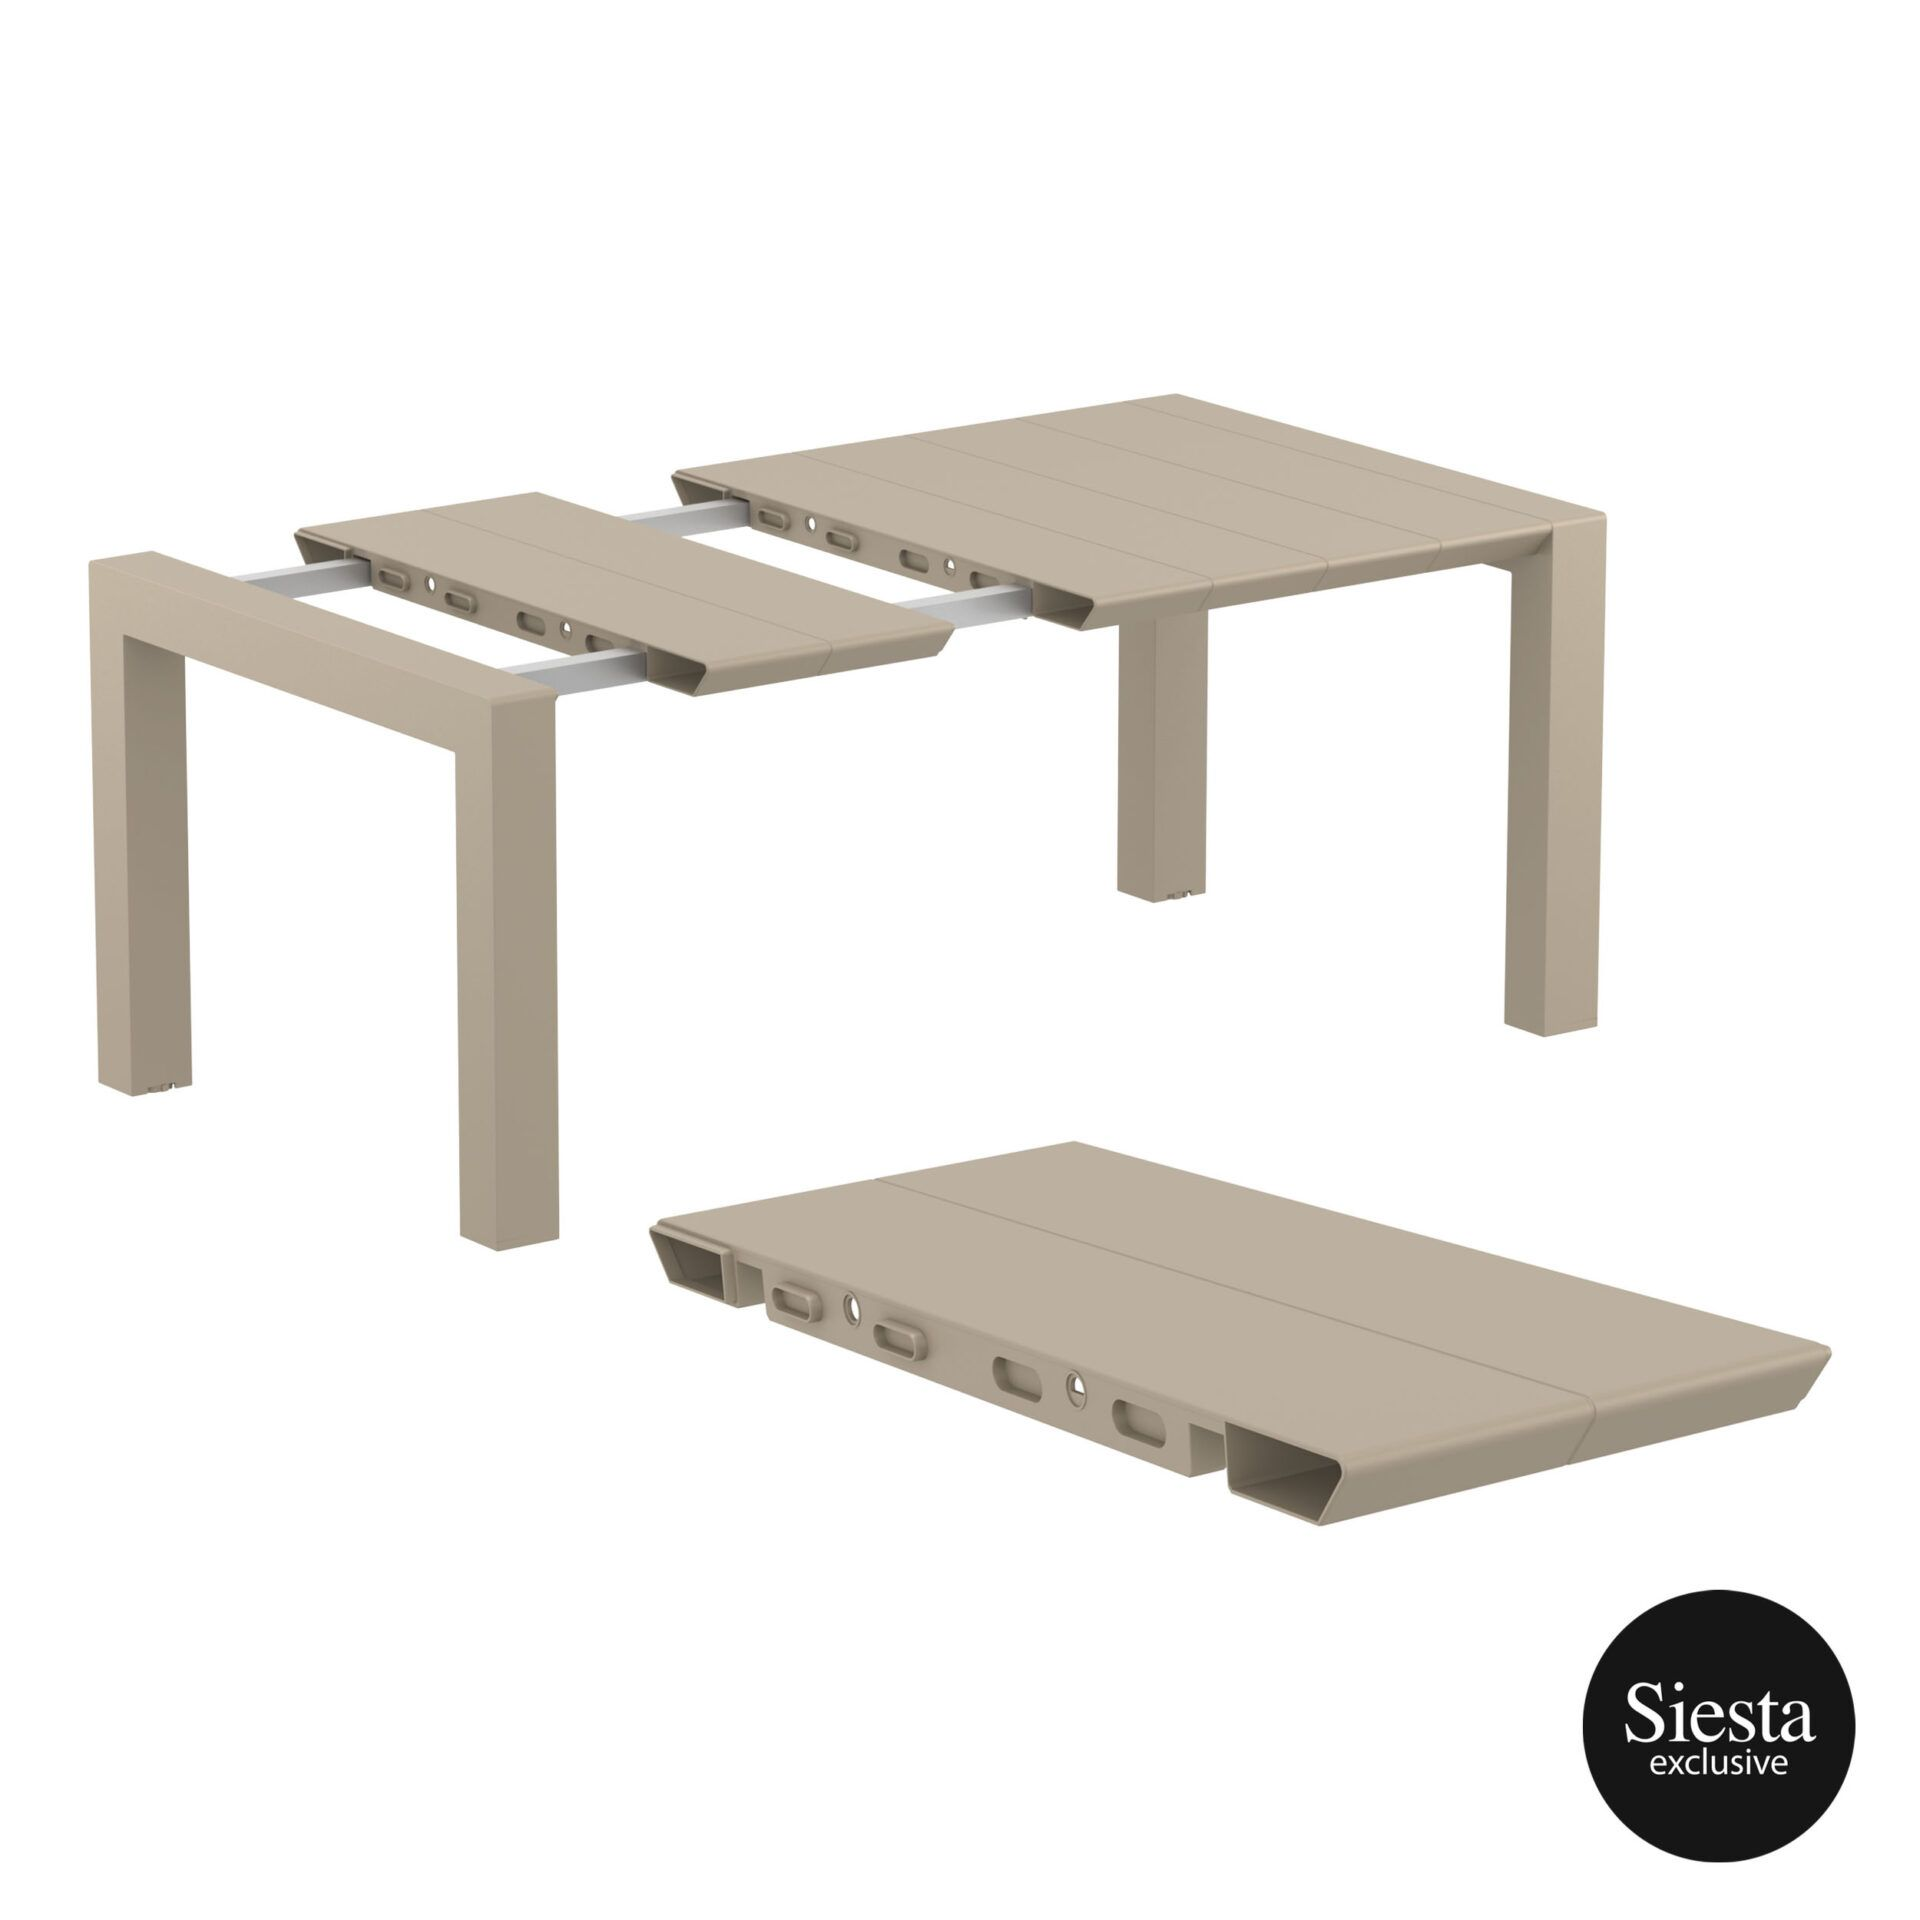 009 vegas table 140 taupe extension part